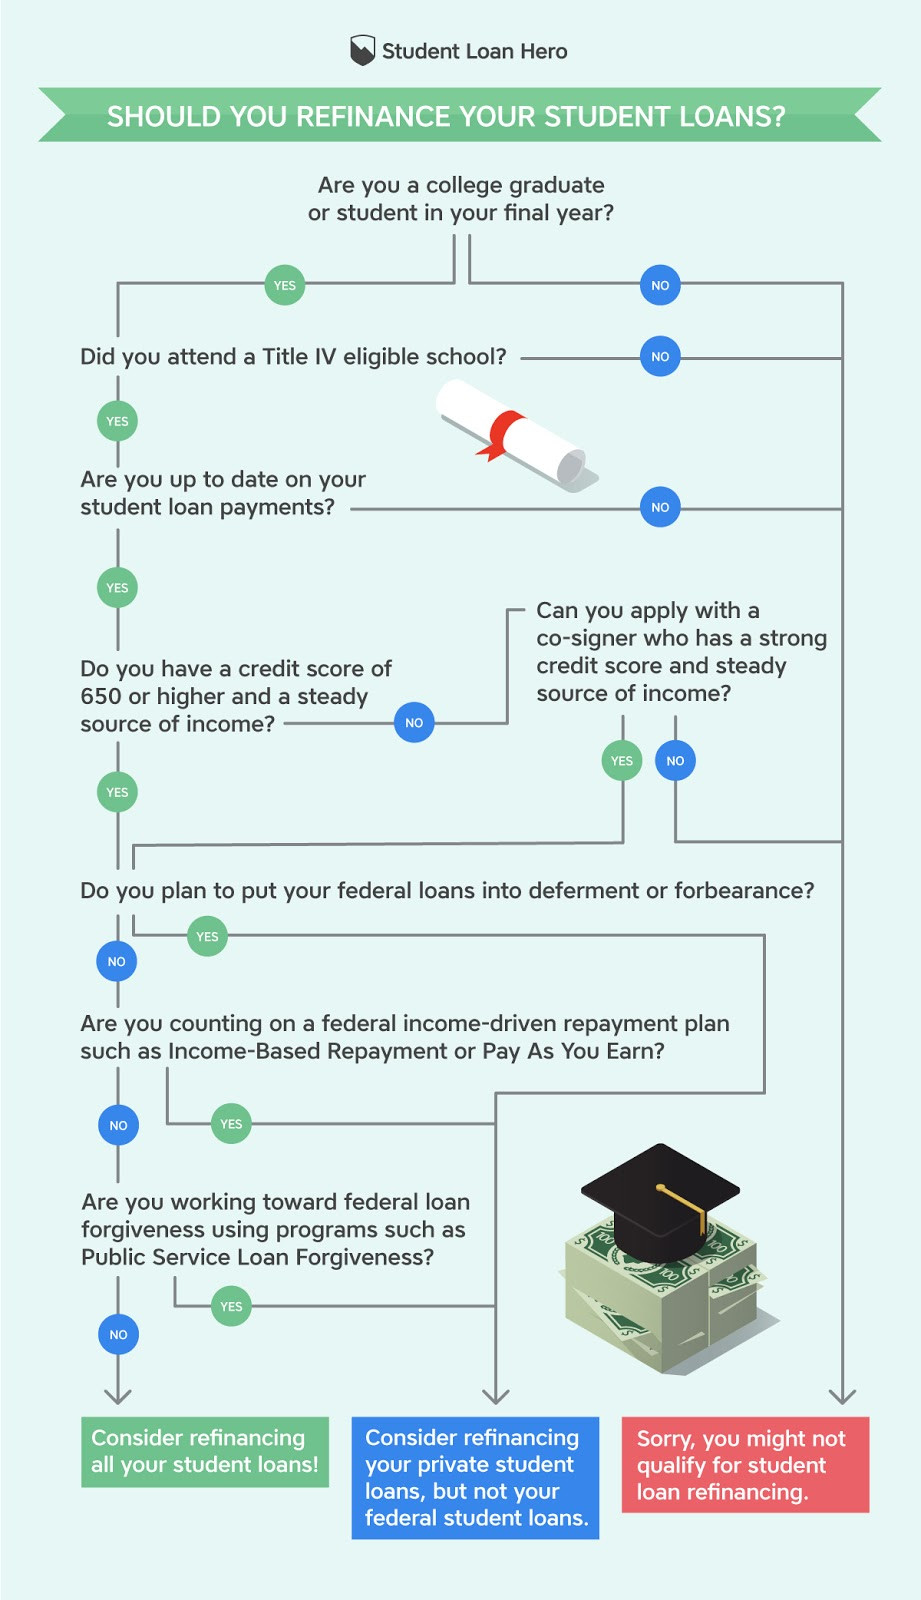 Infographic to determine if you should refinance your student loan